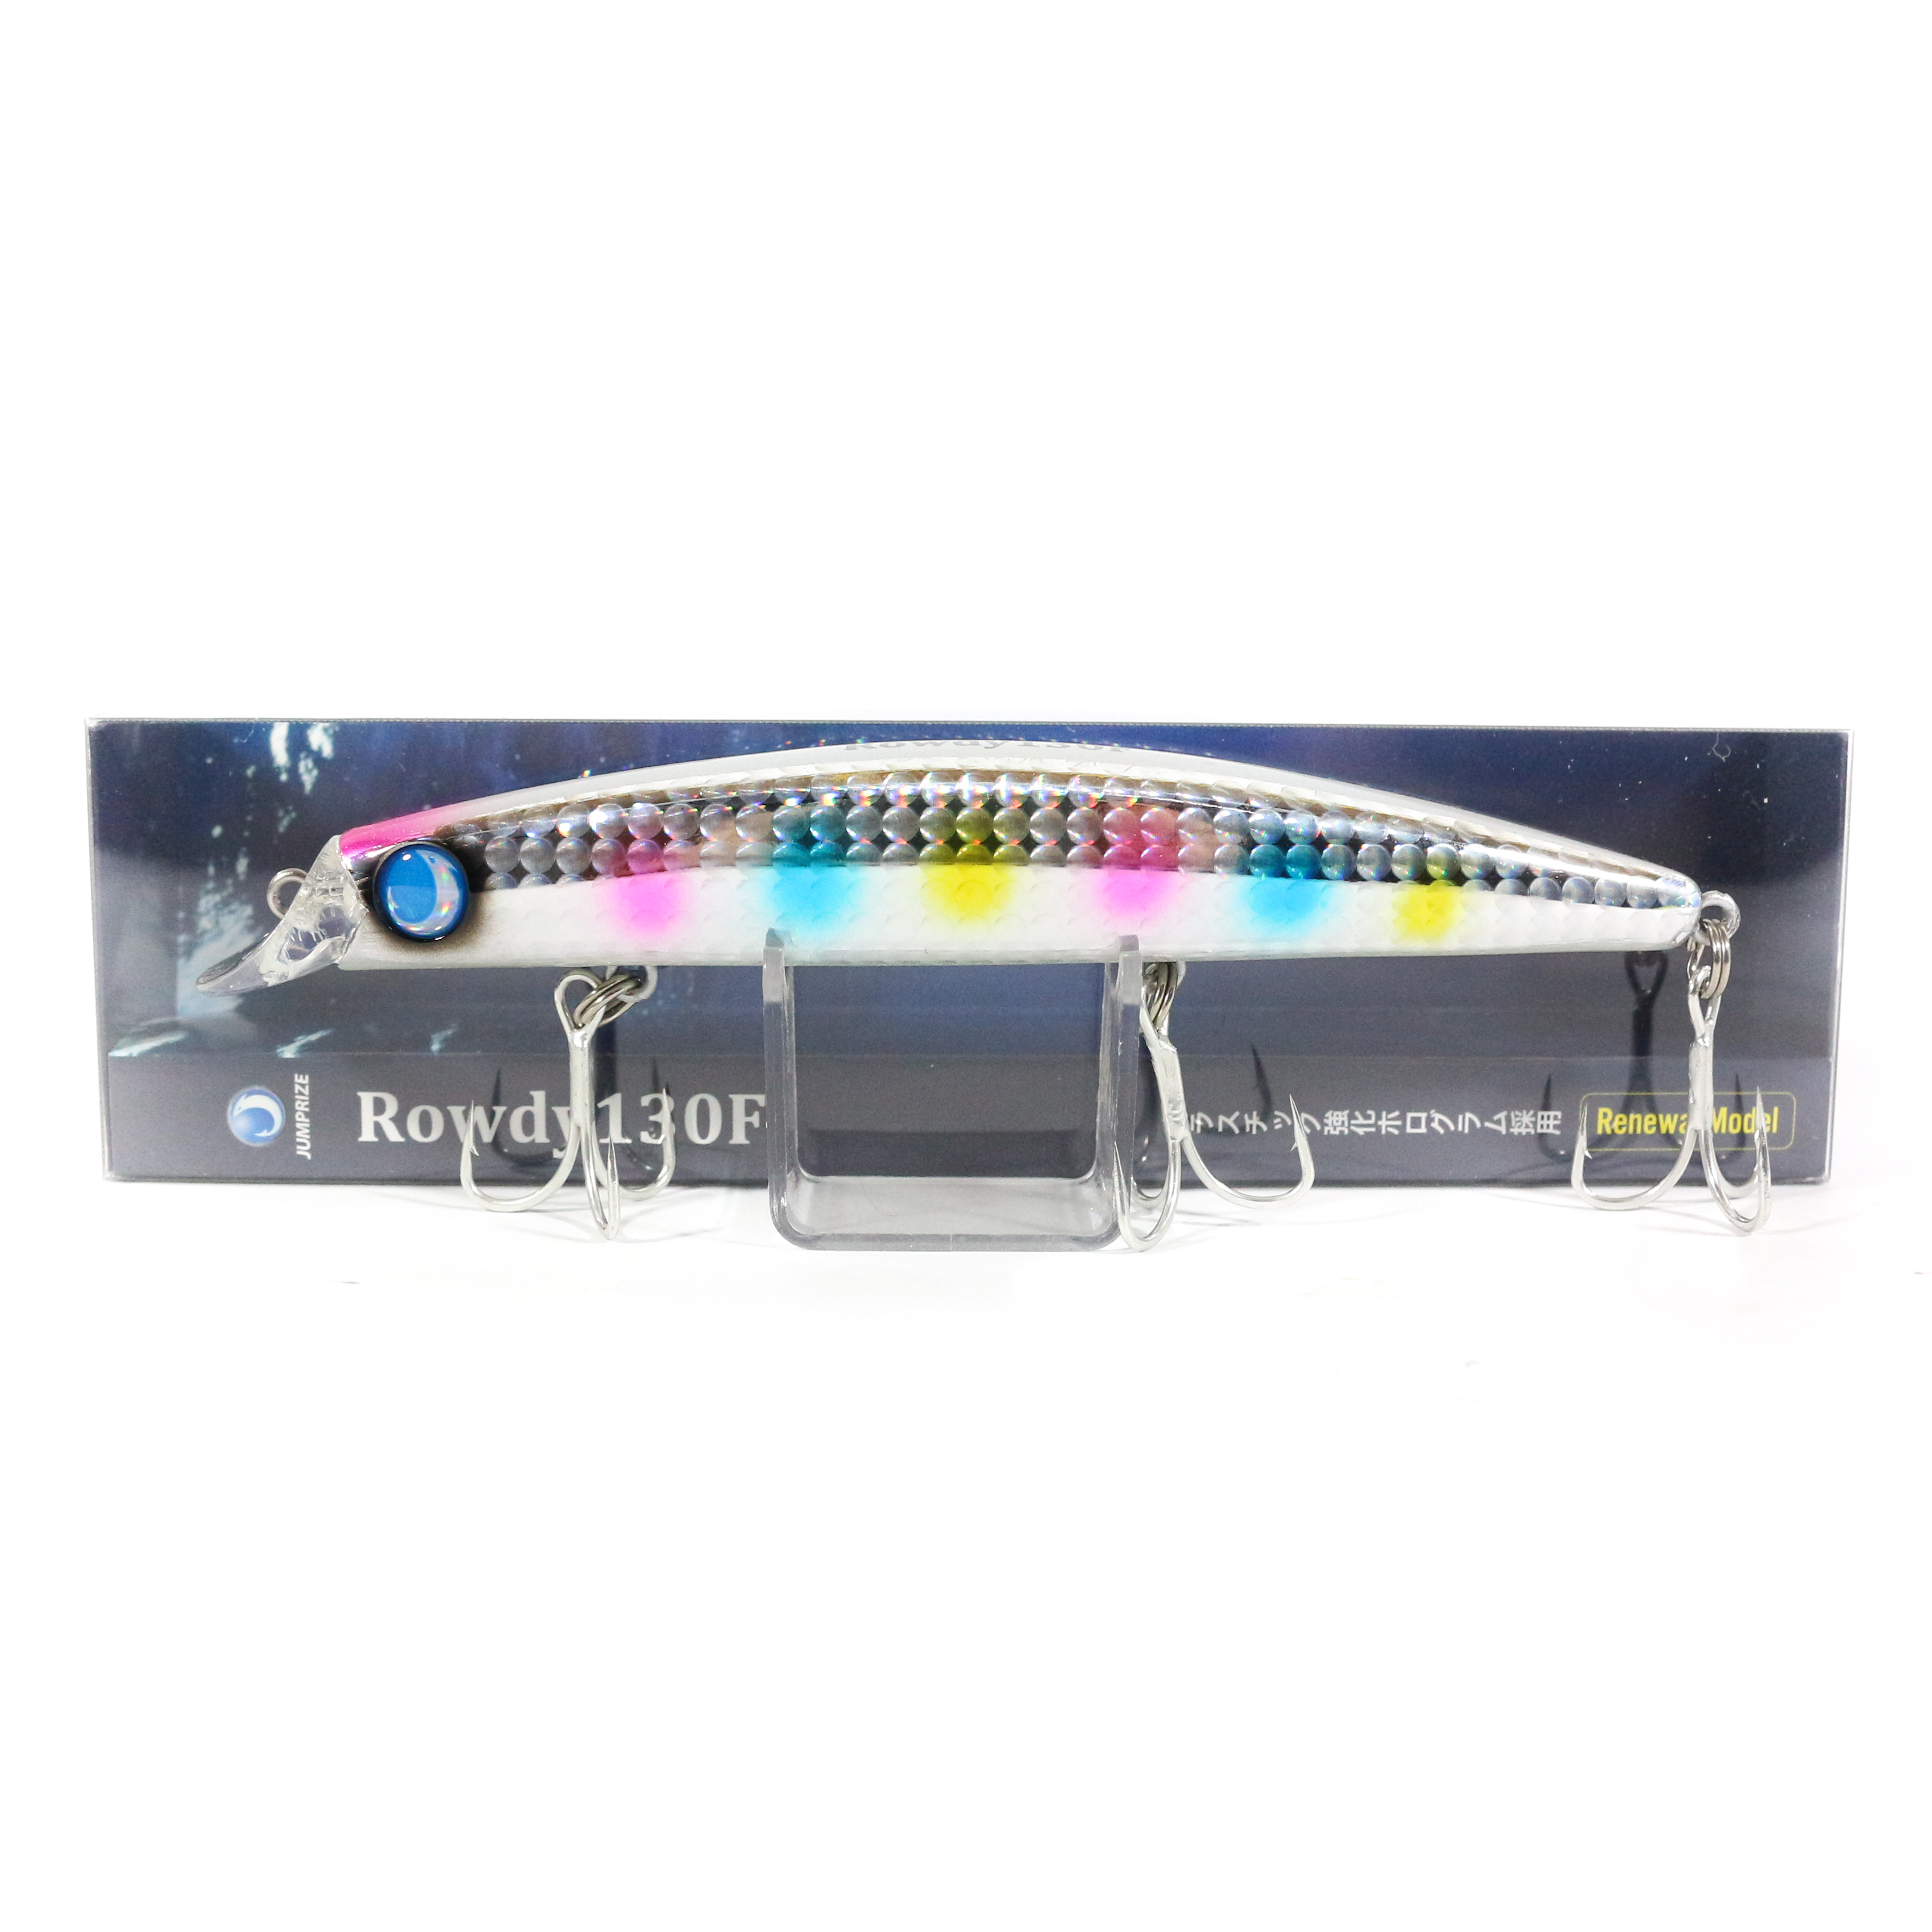 Sale Jumprize Rowdy 130F Floating Lure 101 (1560)